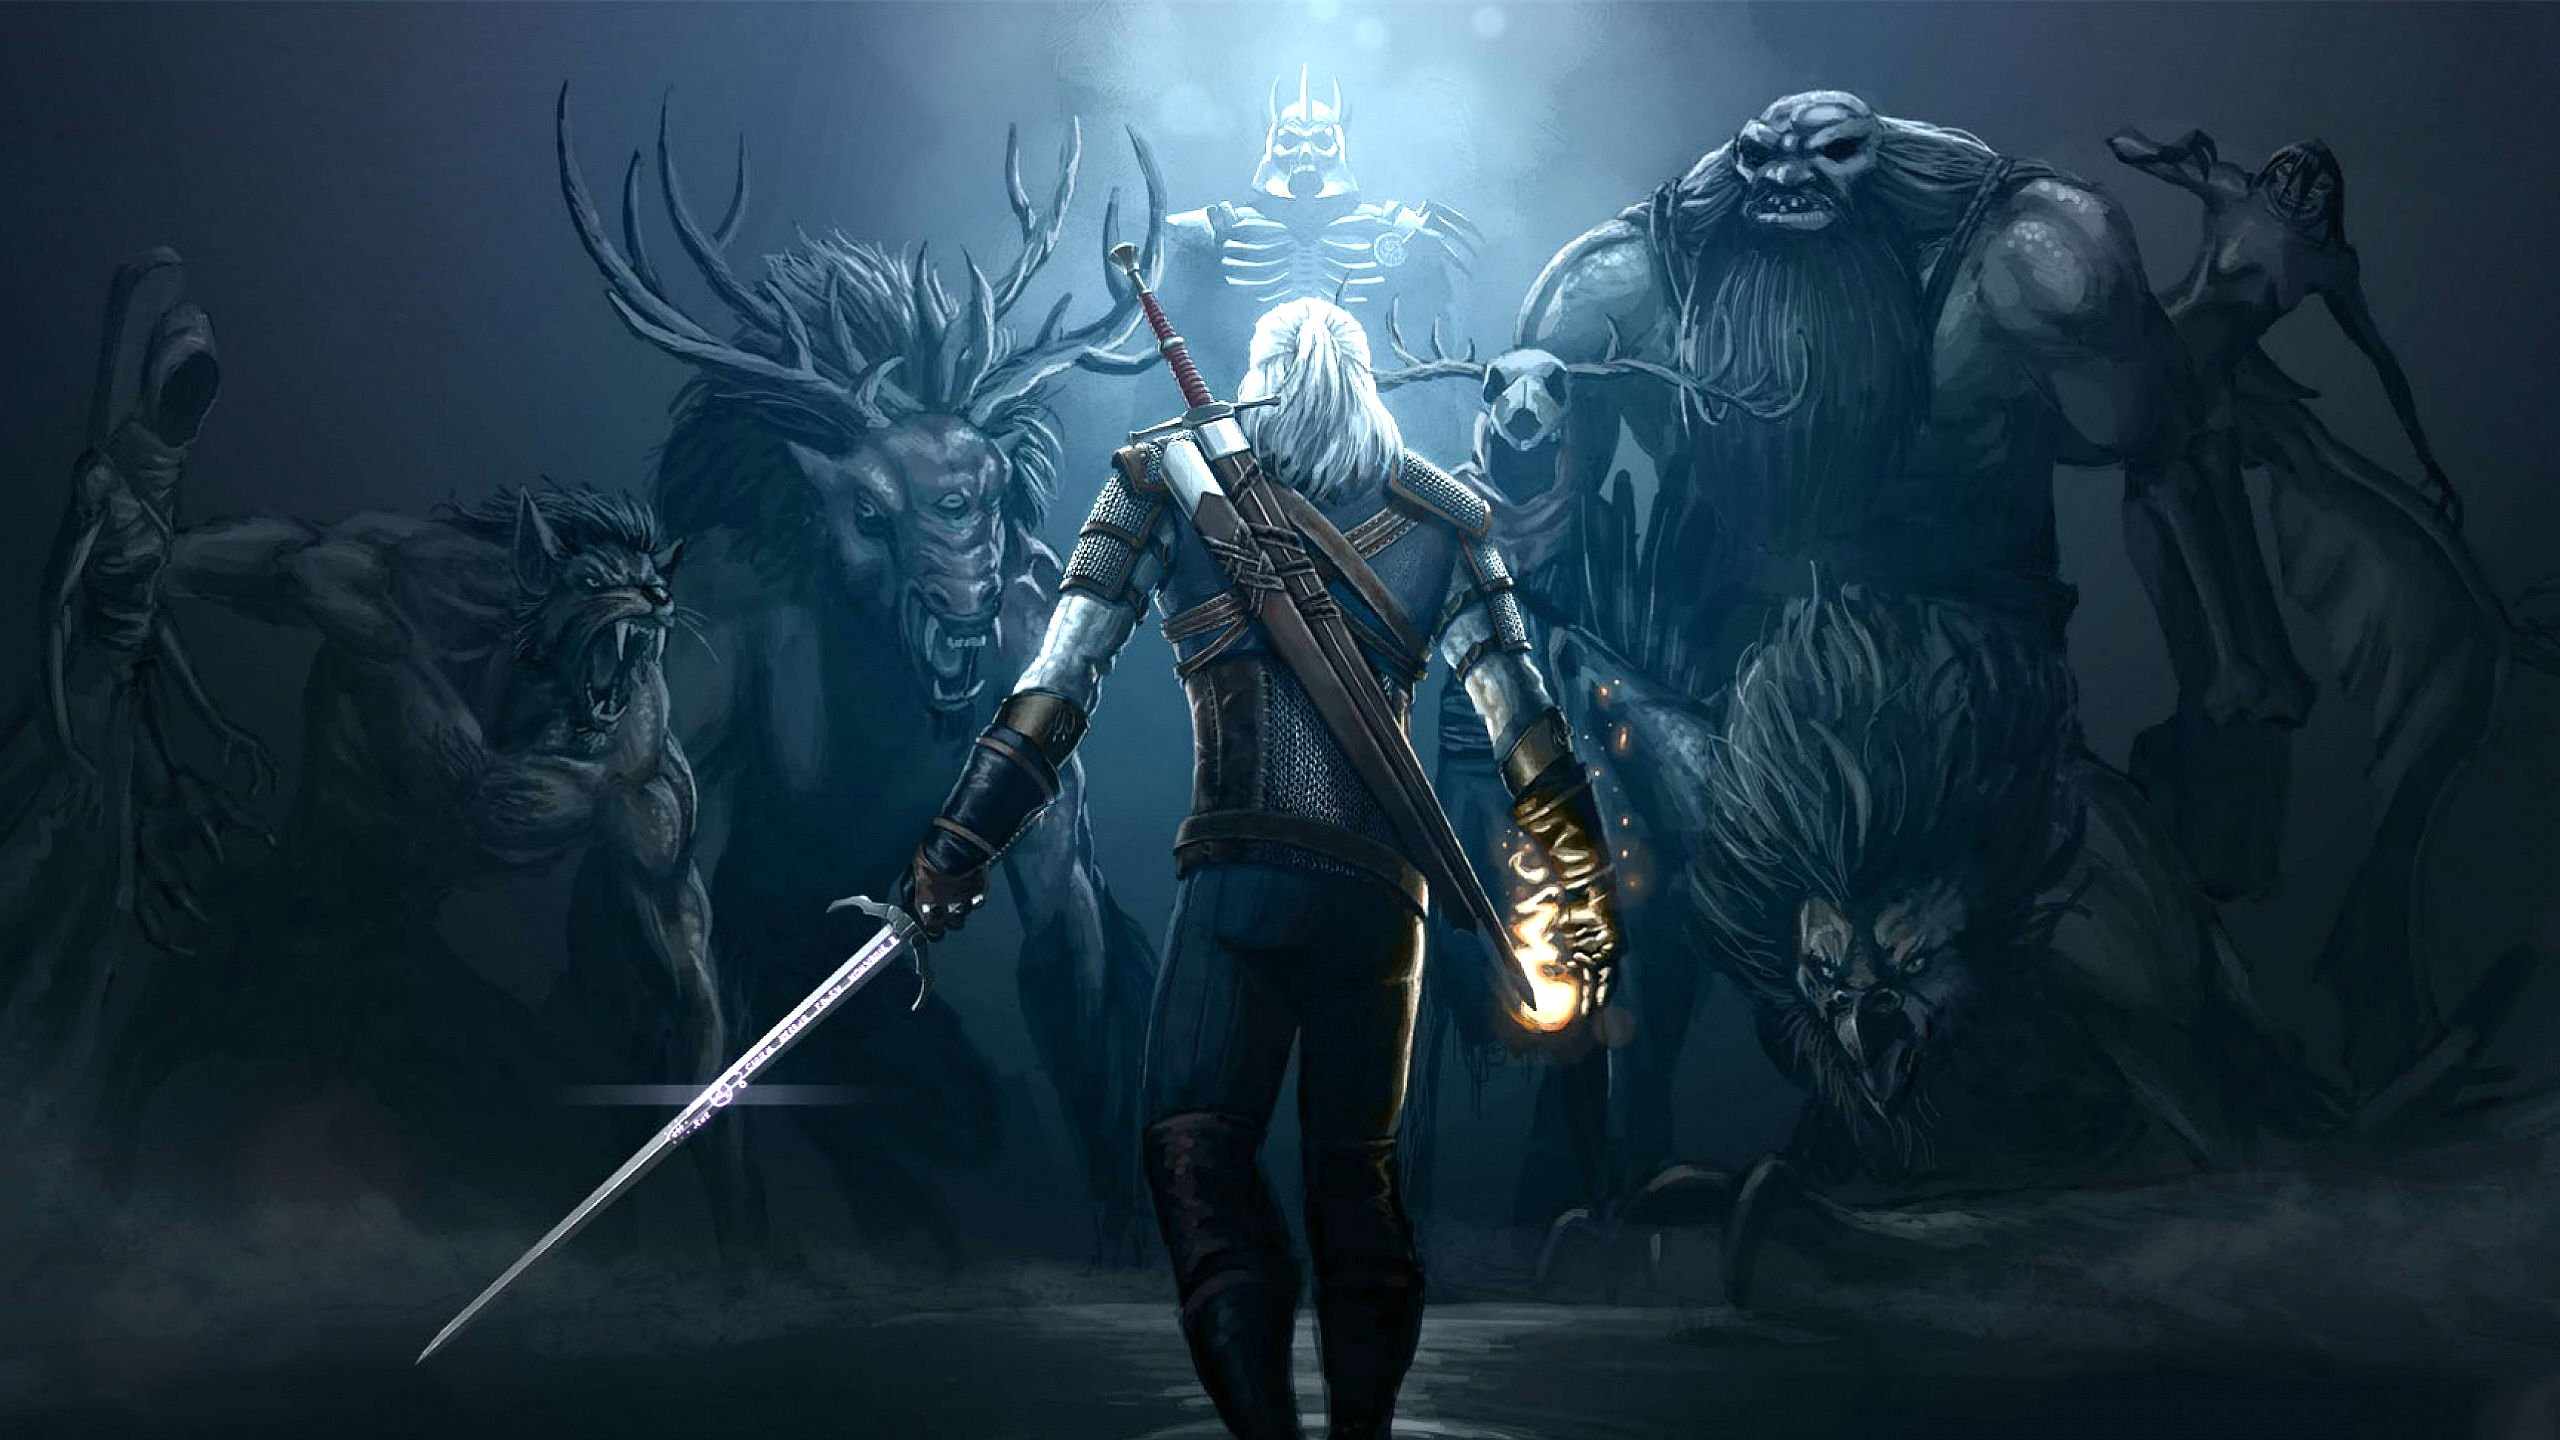 The Witcher Wallpaper - impremedia.net